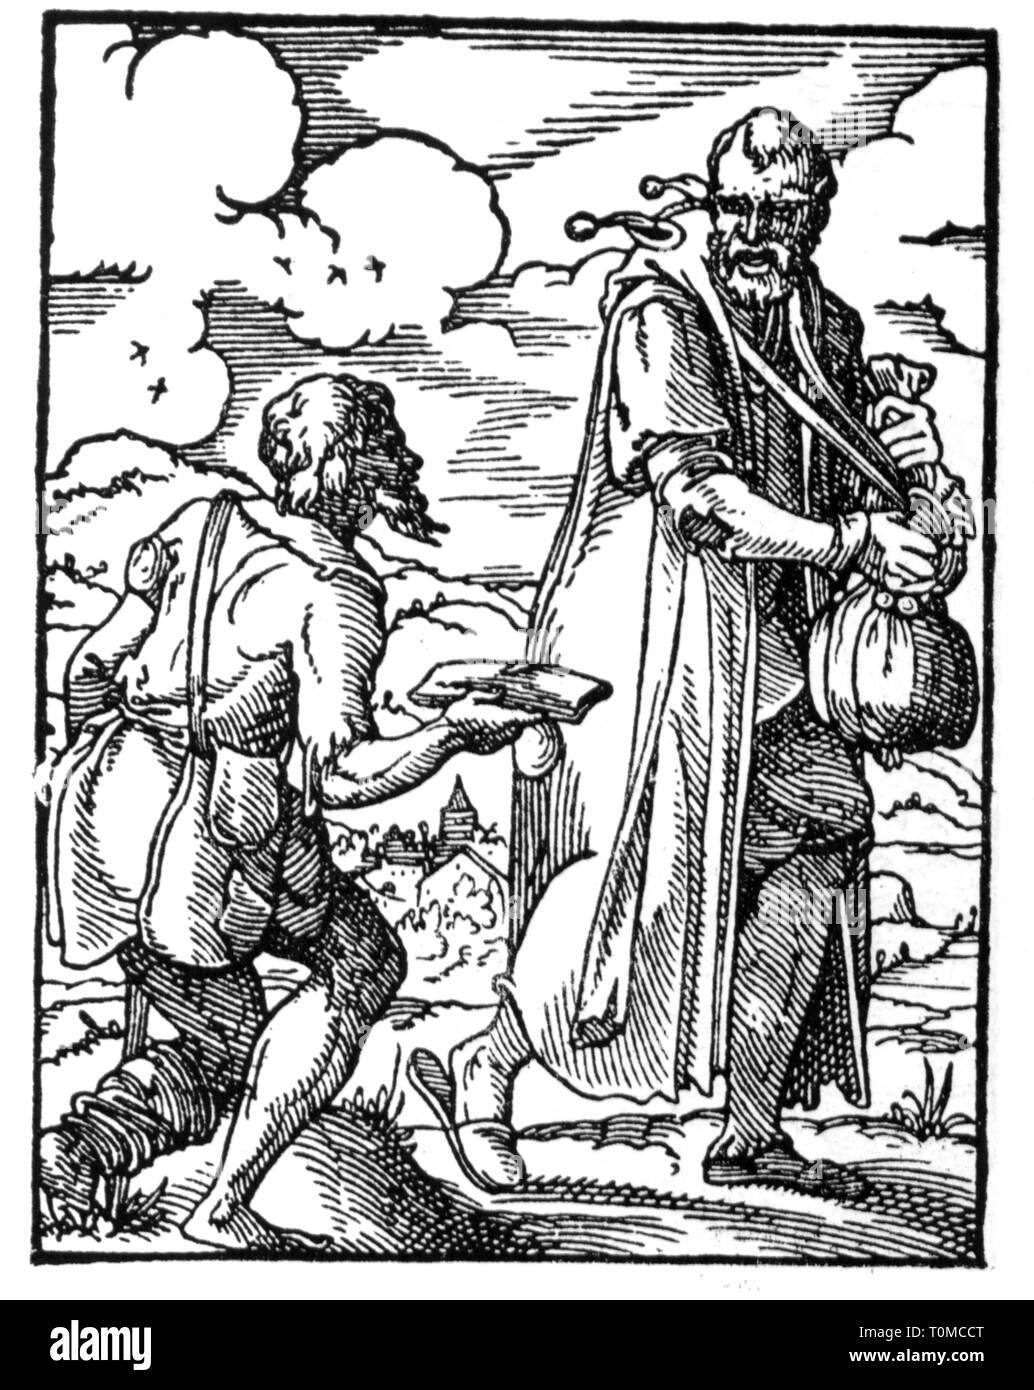 people, allegories, 'Money's Fool', woodcut, 'Staendebuch' von Jost Amman, Frankfurt am Main, 1568, with verse by Hans Sachs, Additional-Rights-Clearance-Info-Not-Available - Stock Image